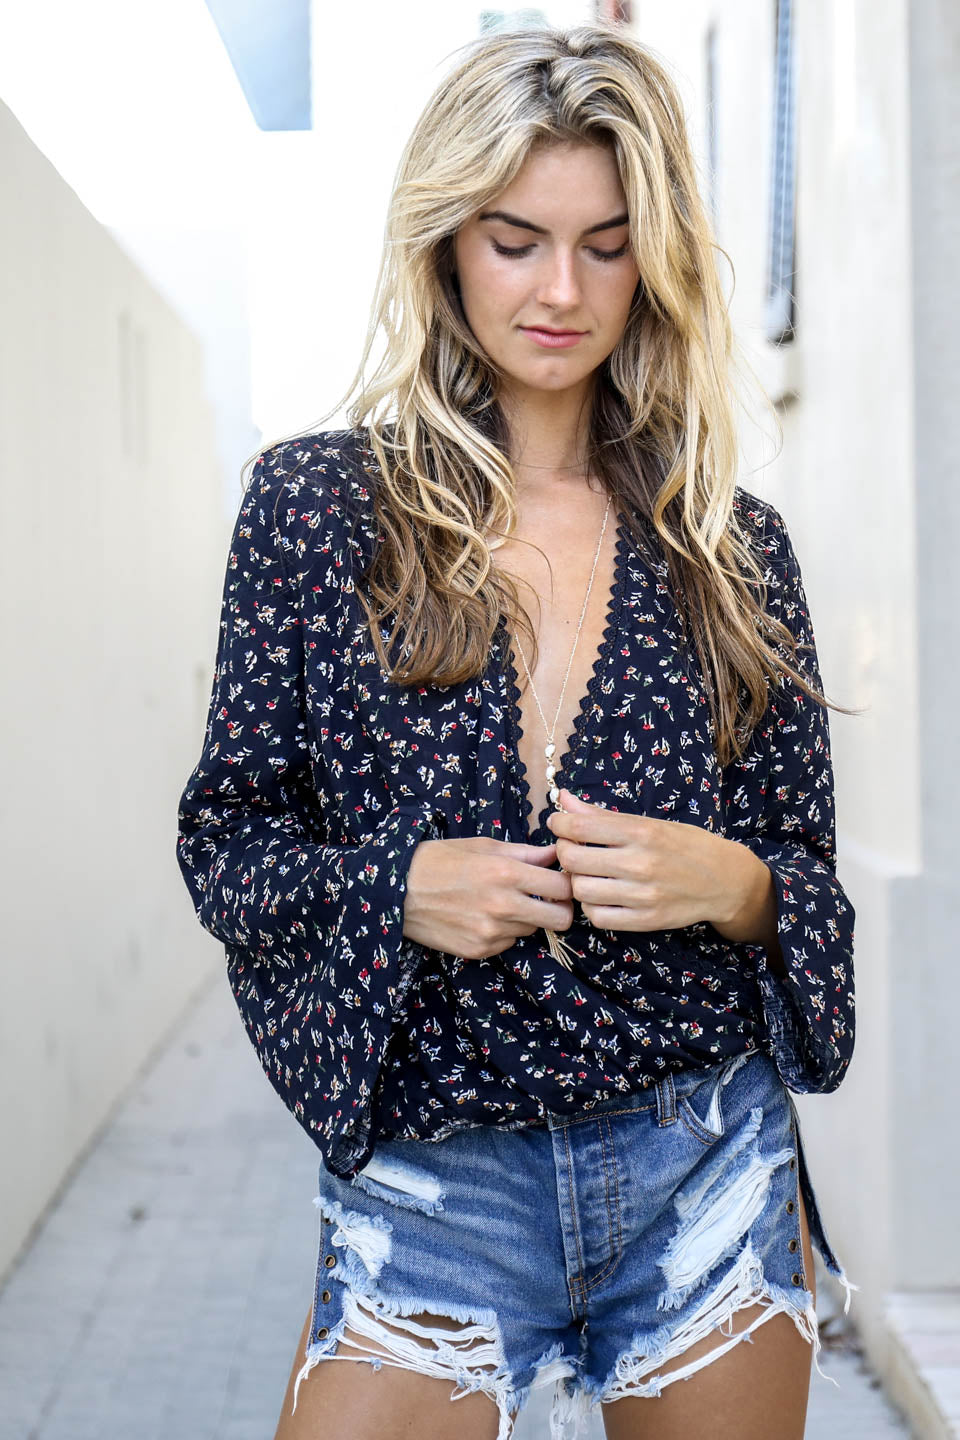 Little Town Love Navy Surplice Top - Amazing Lace